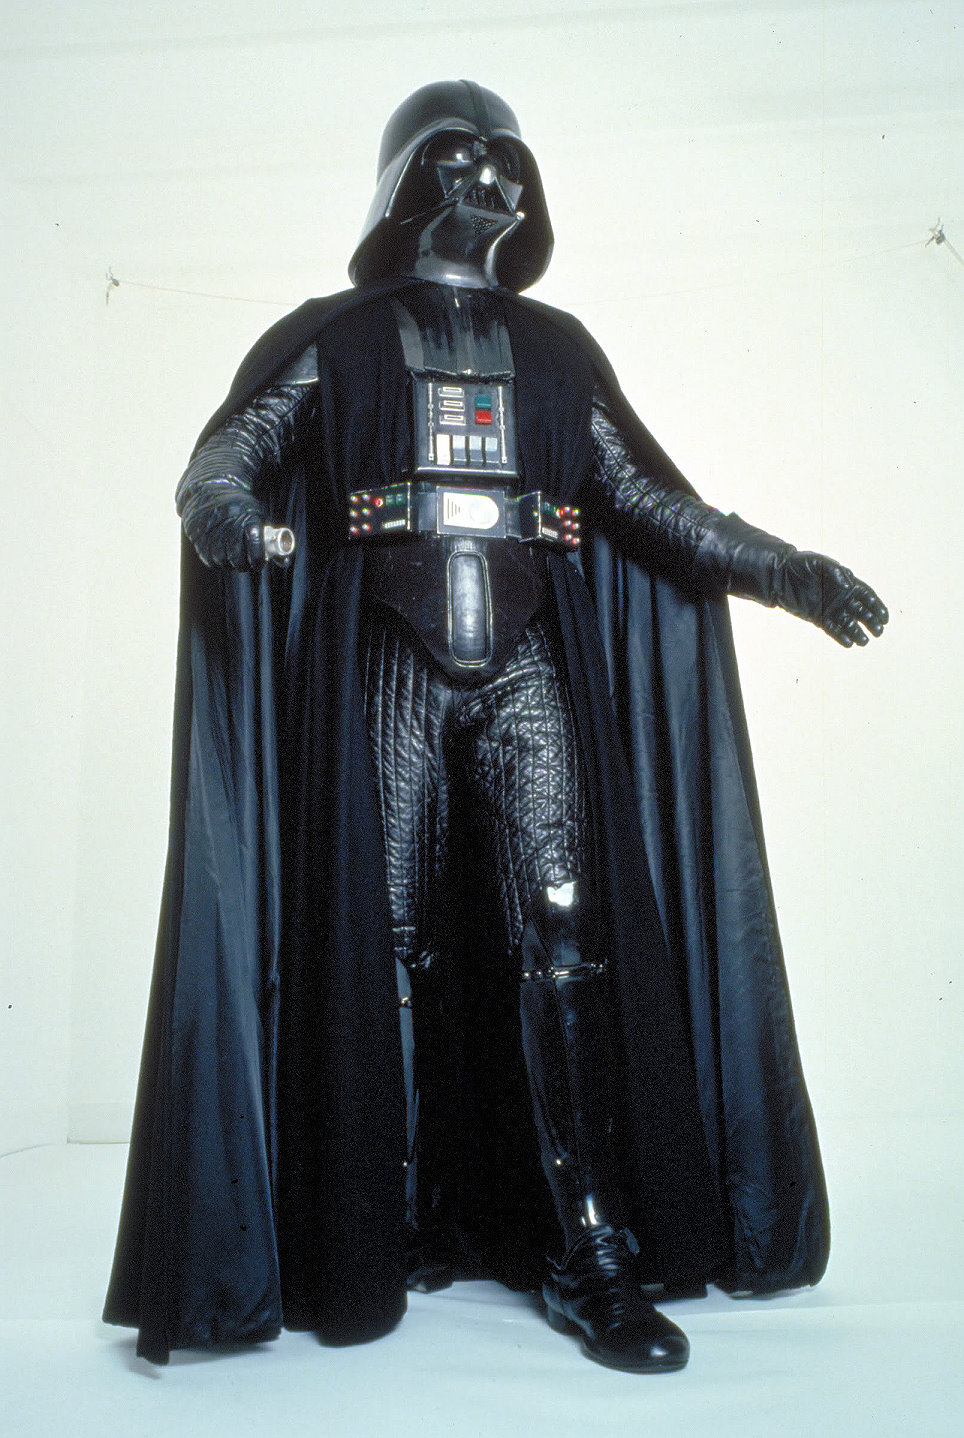 Darth vader sous toutes ses coutures - Page 6 091205112741202114992425